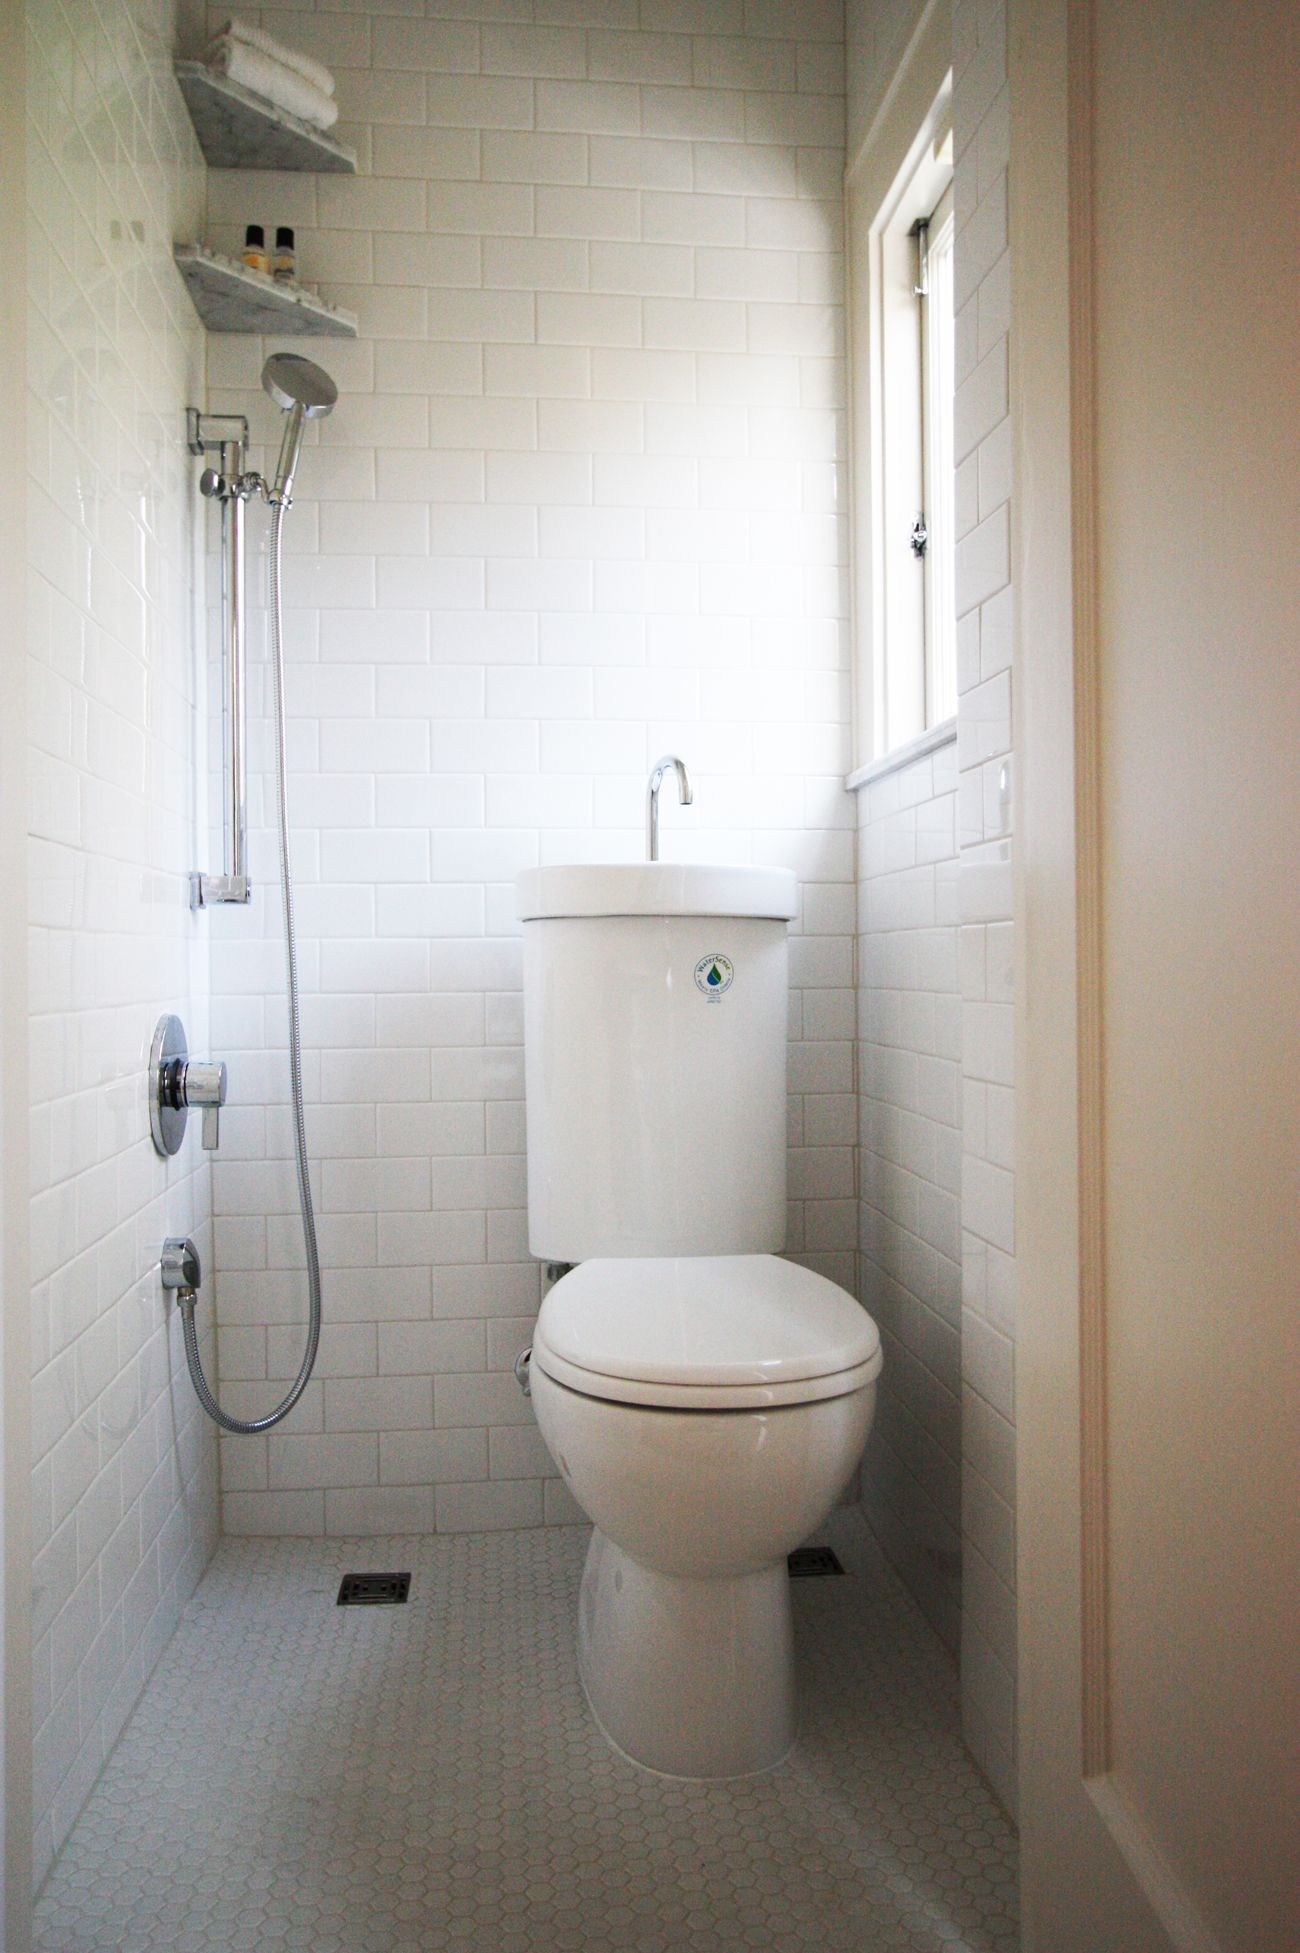 Hand Shower With White Ceramic Toto Toilet Which Has A Sink In The Back Top Of